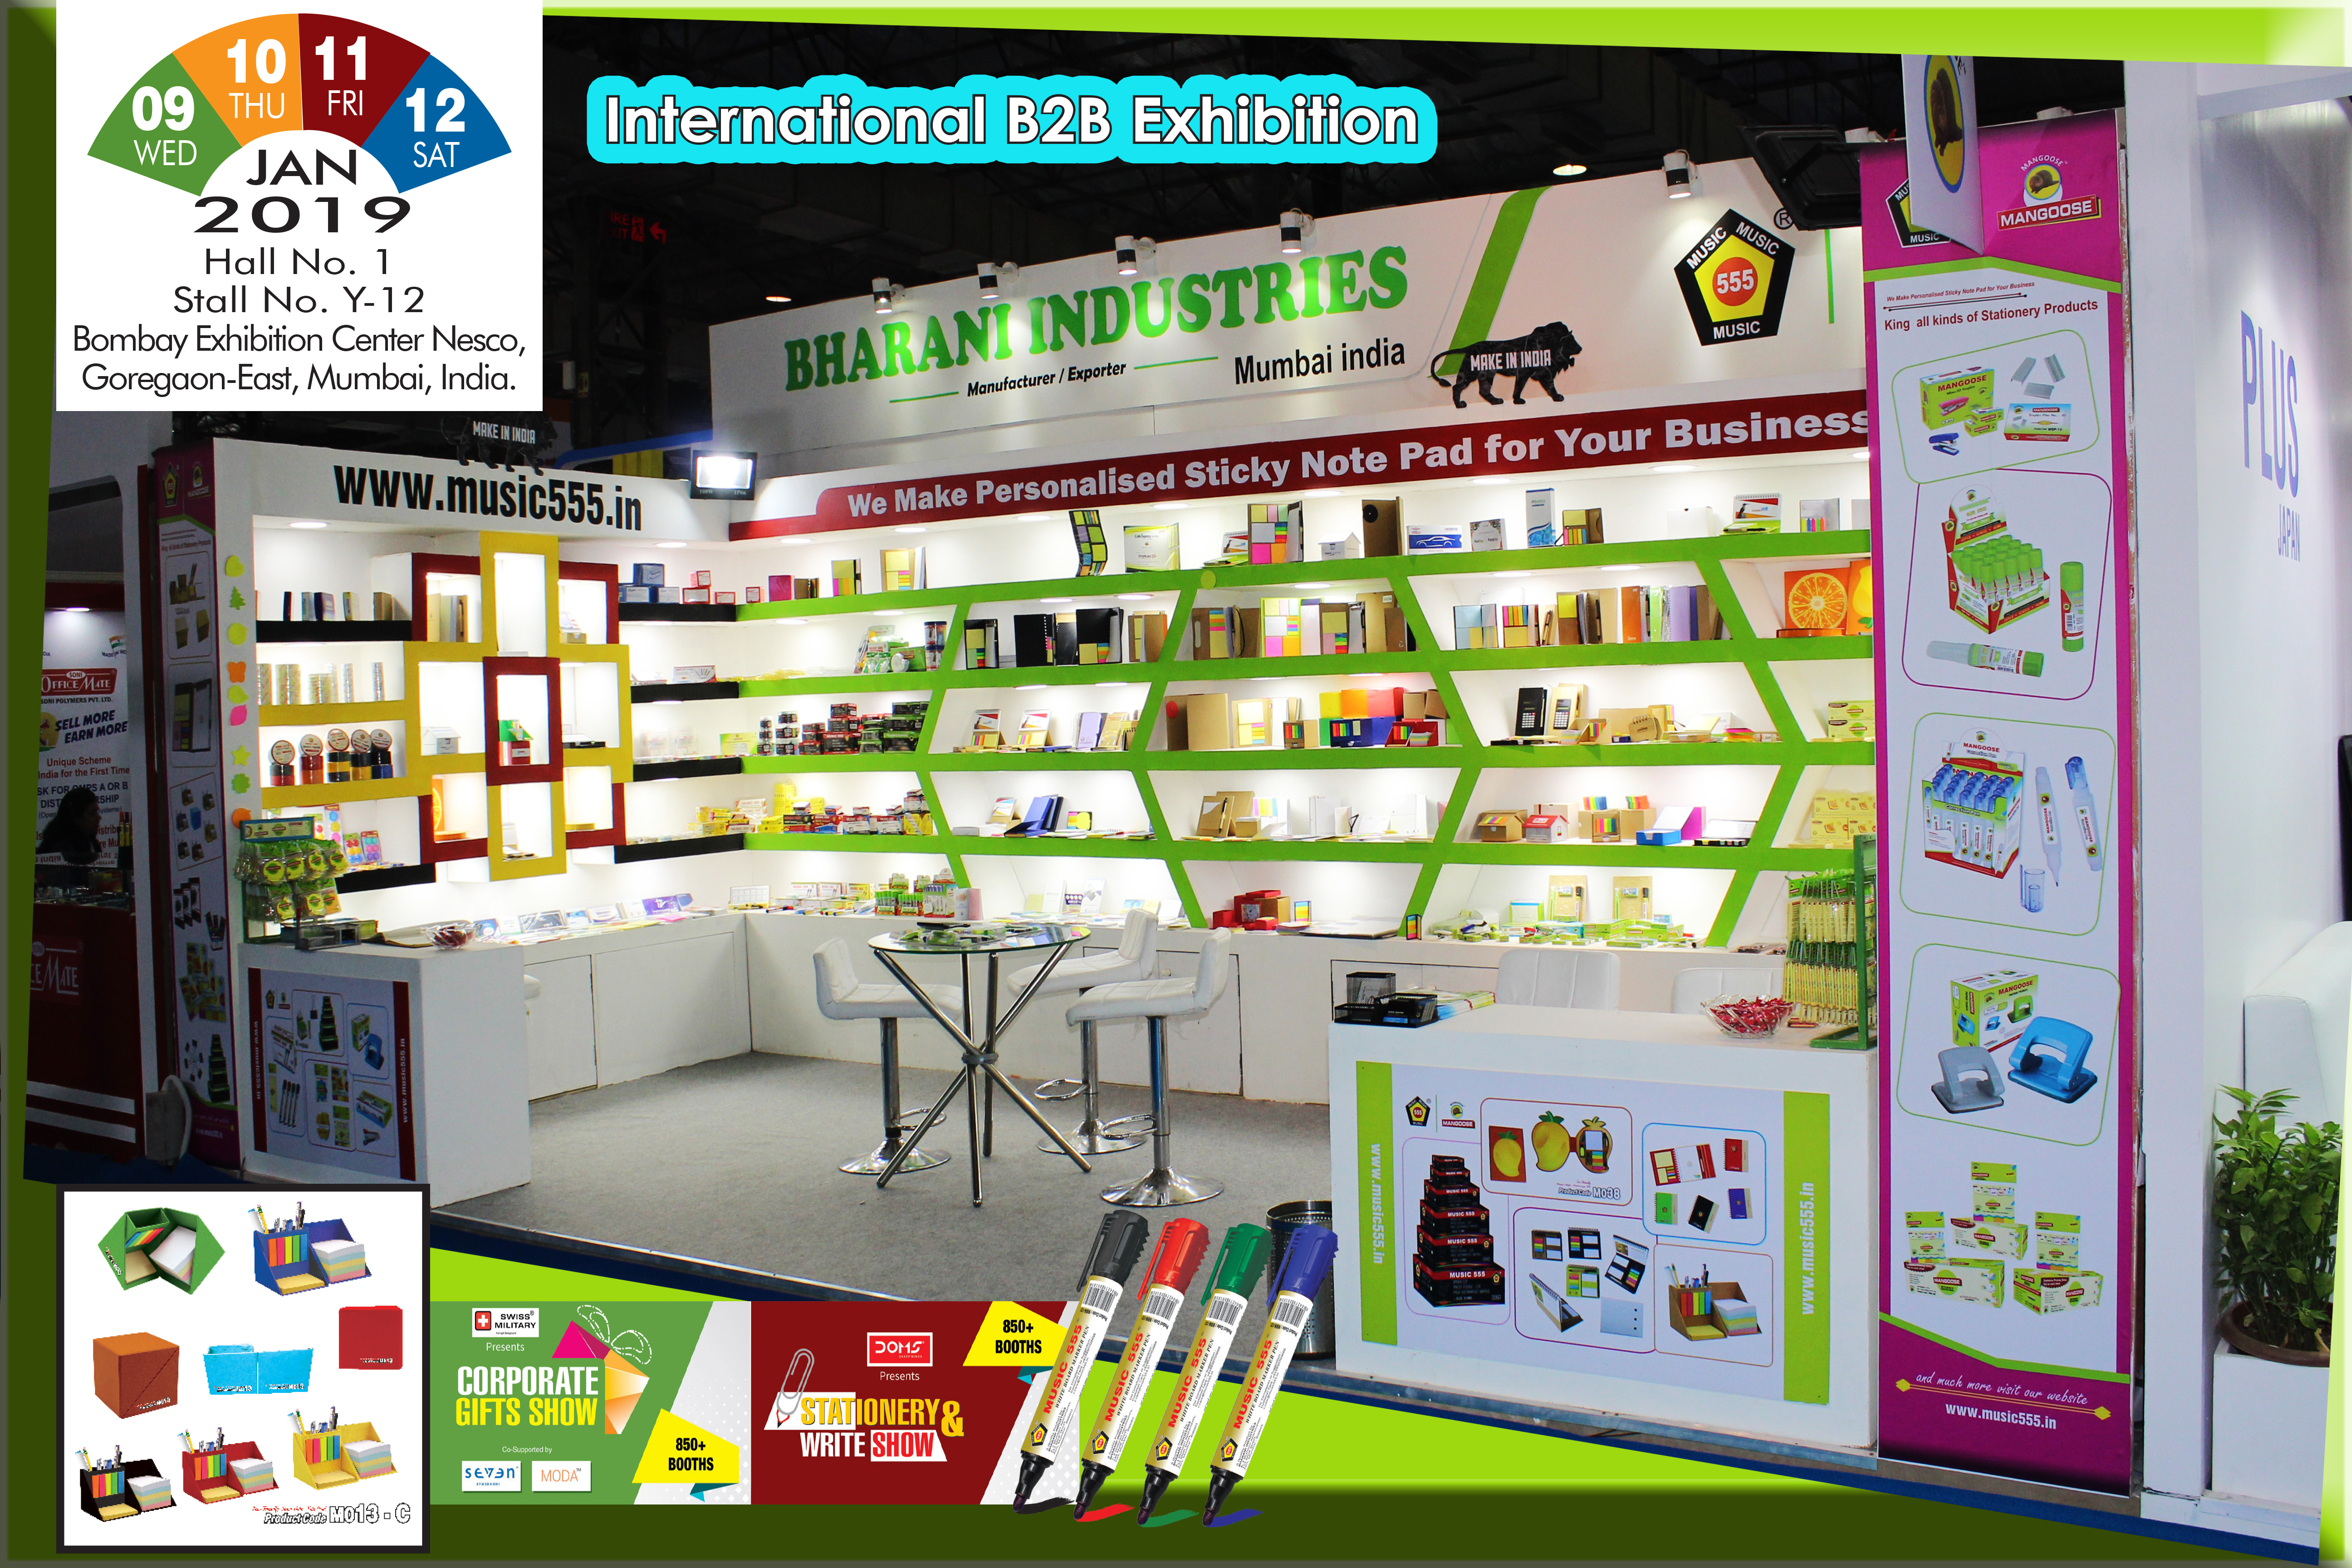 International B2B Exhibition